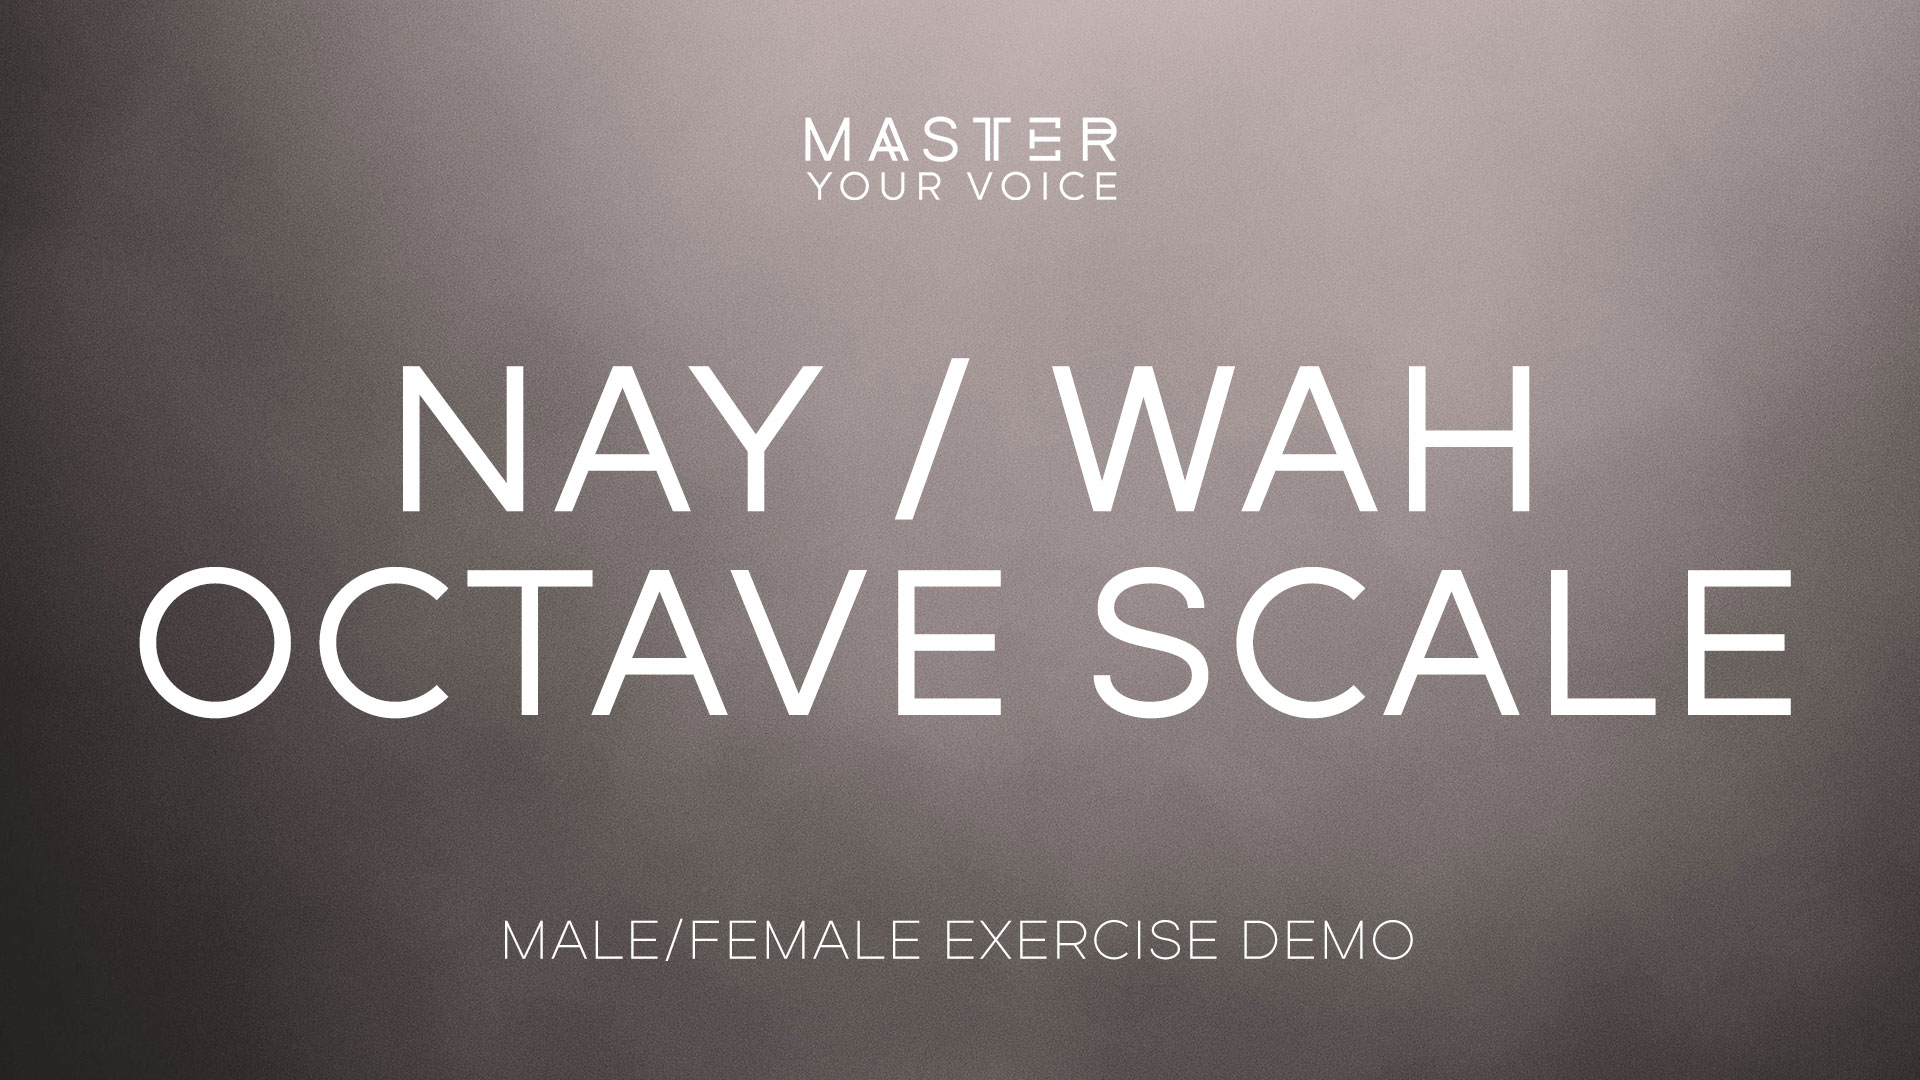 Nay / Wah Octave Scale Exercise Demo